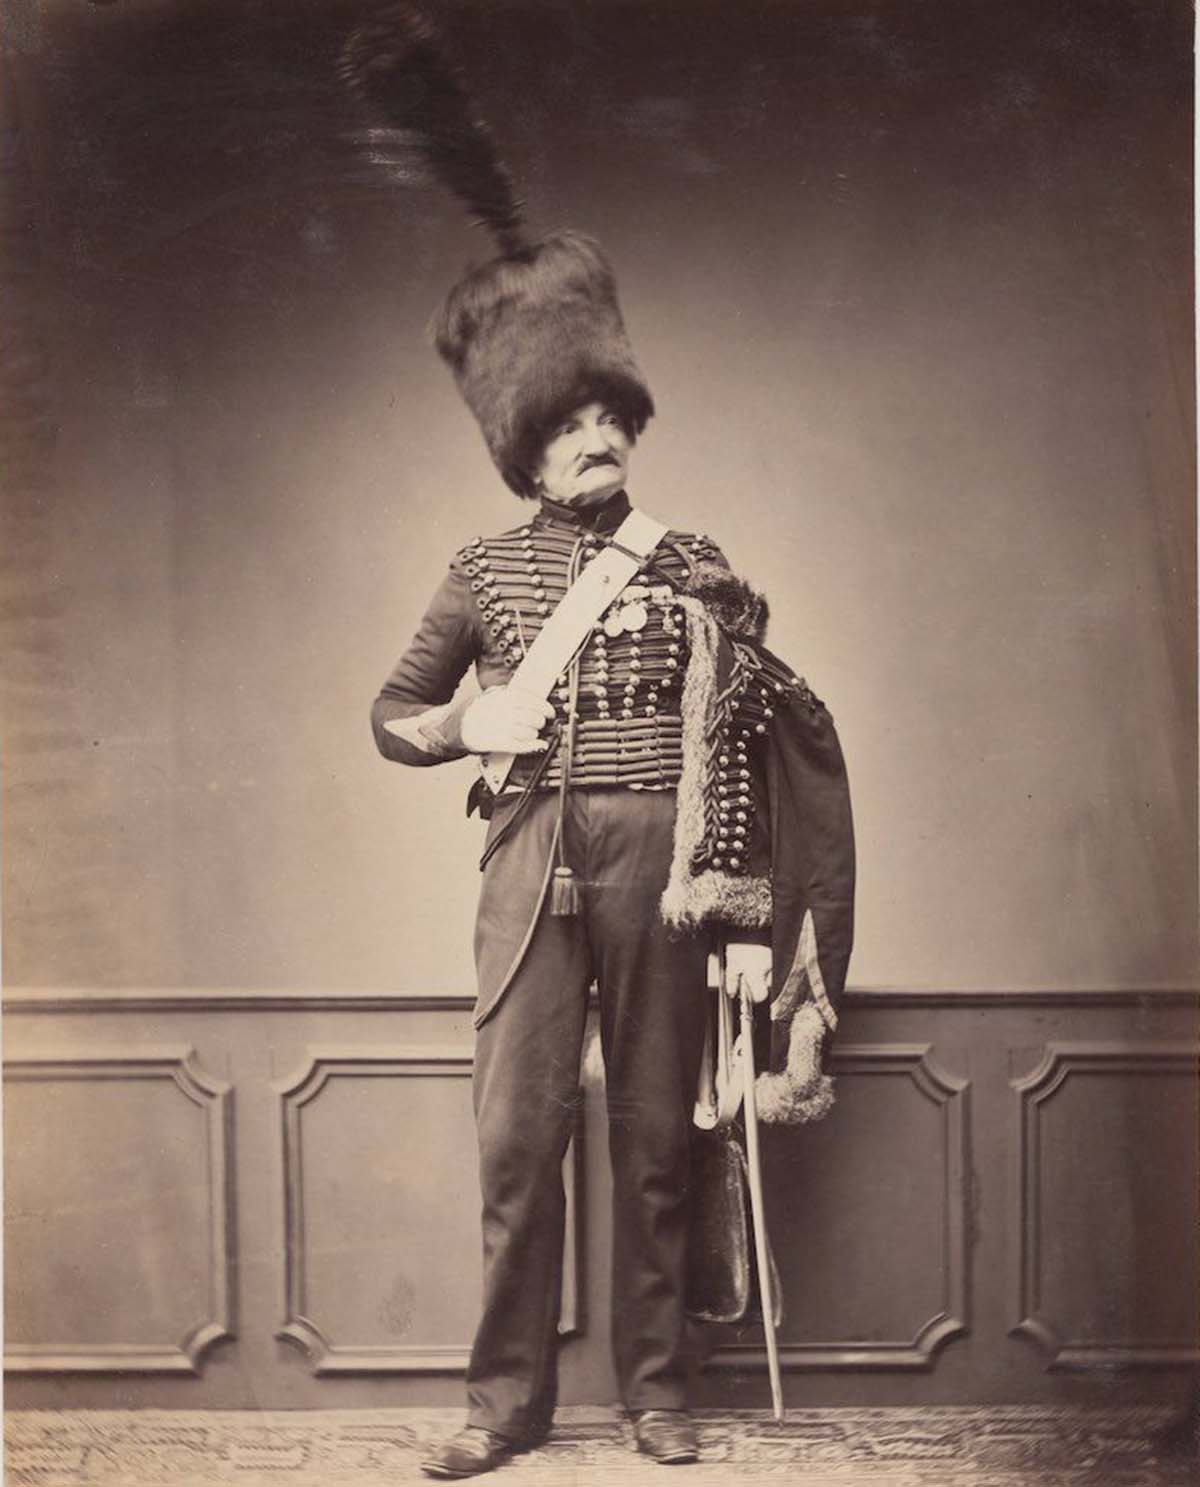 Monsieur Maire of the 7th Hussars circa 1809-1815.